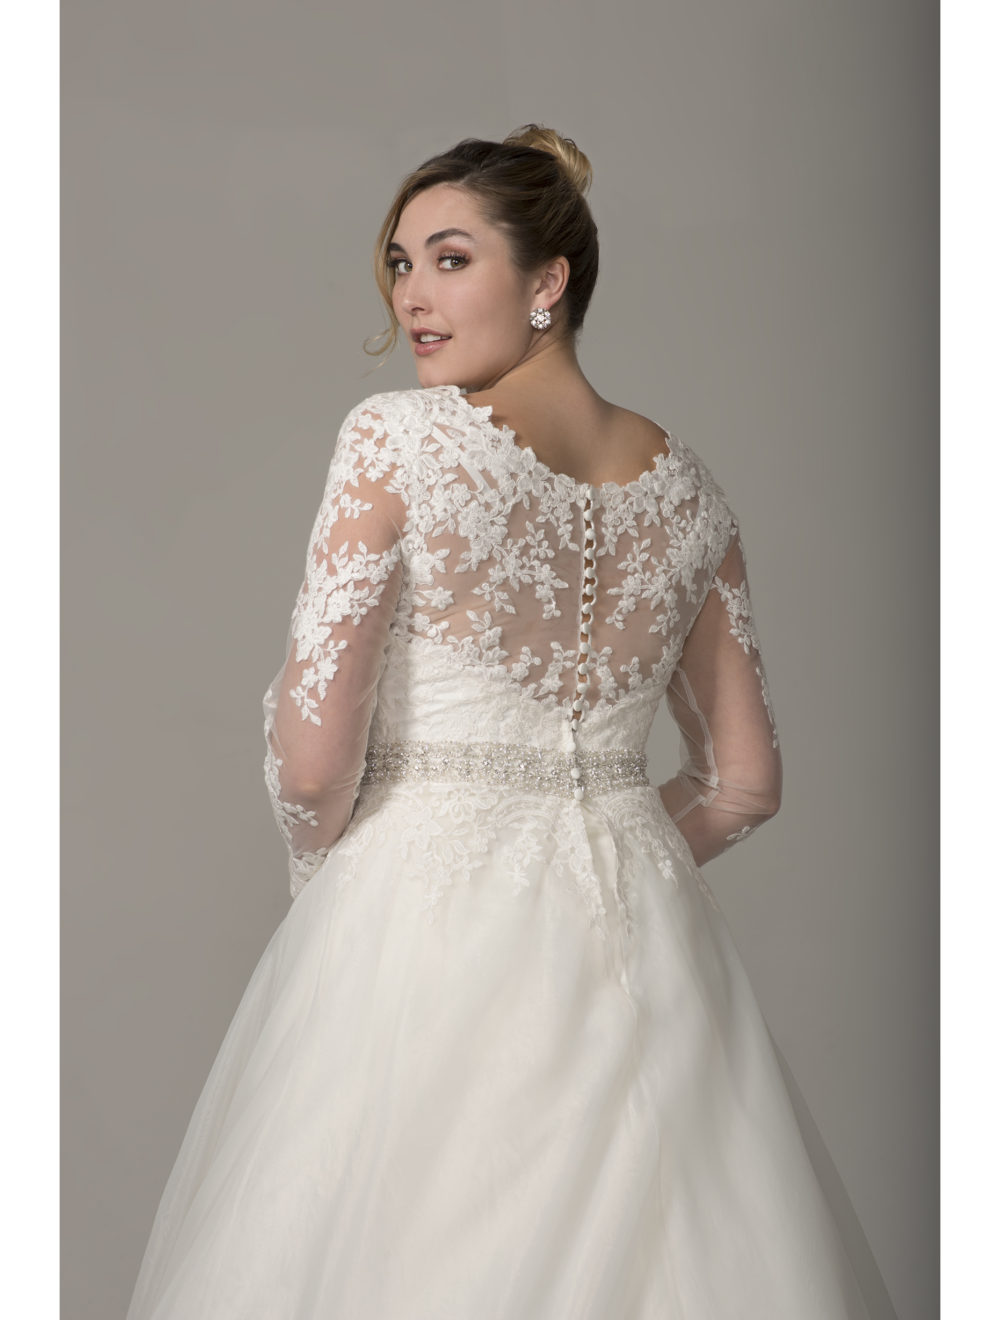 Outstanding full figure wedding dresses ensign princess for Full size wedding dresses